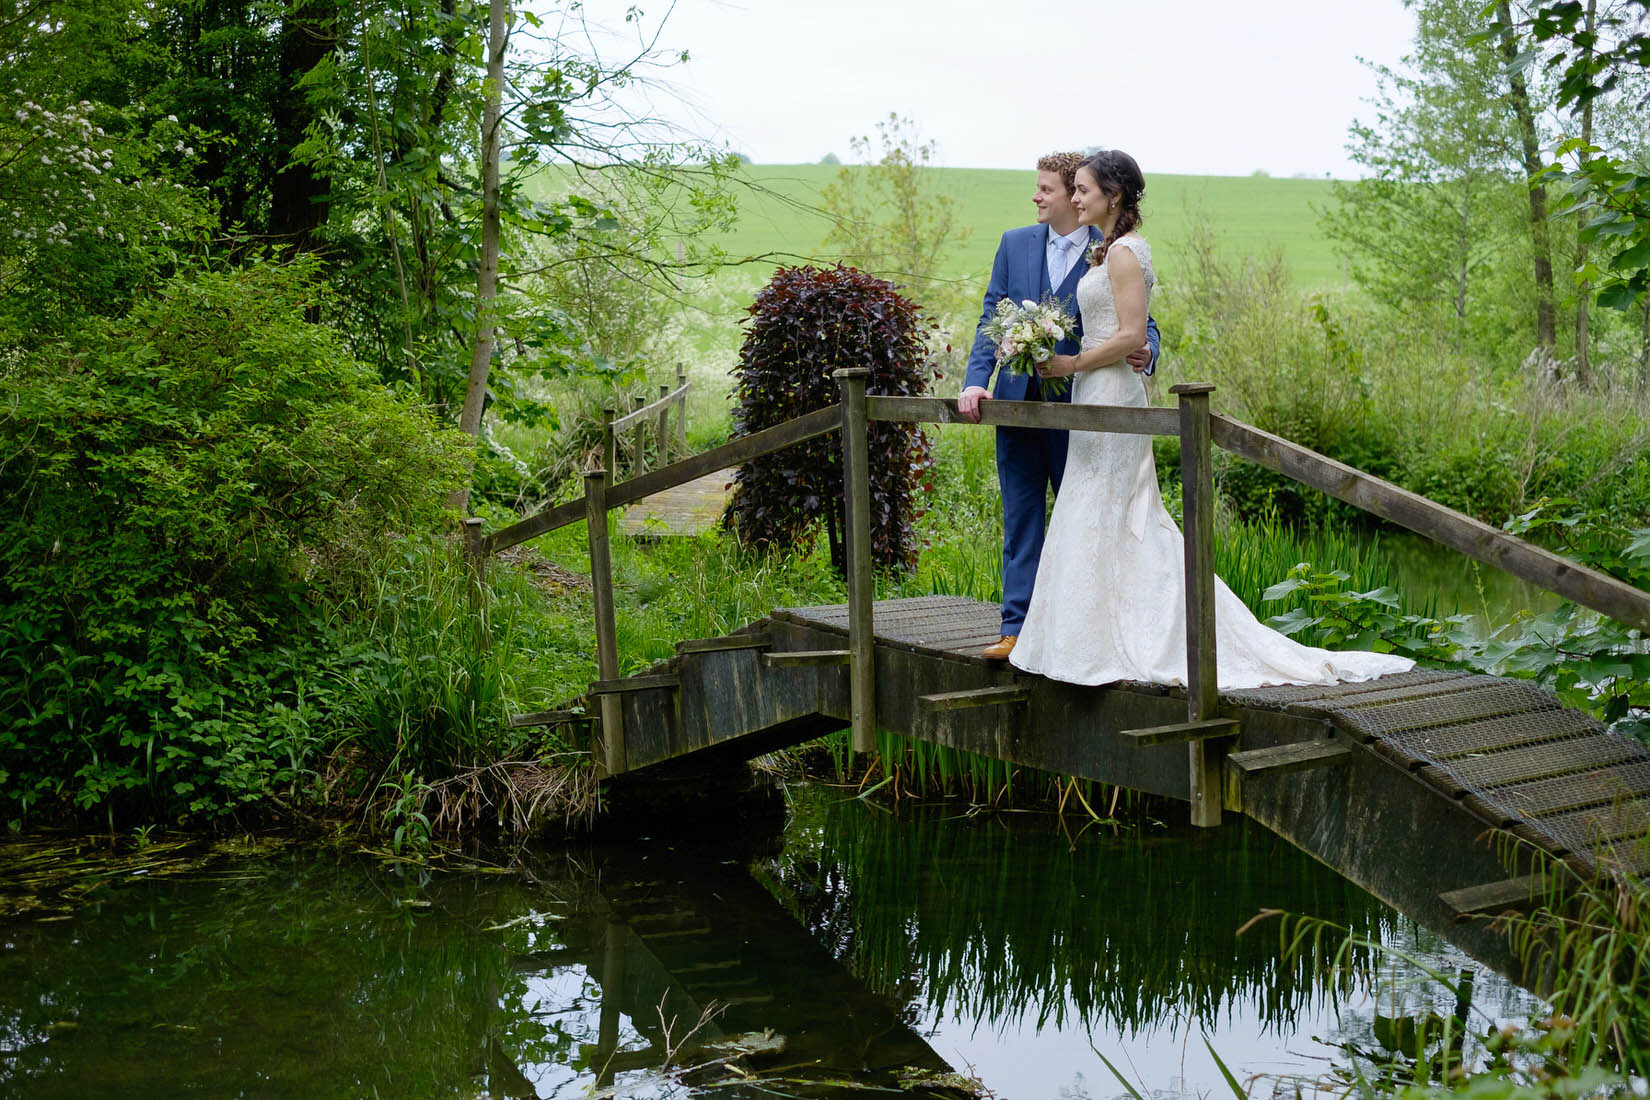 A bride and groom on a bridge over a lake at Great Barn Wedding Venue, Aynho. Photo by Sam and Steve Photography